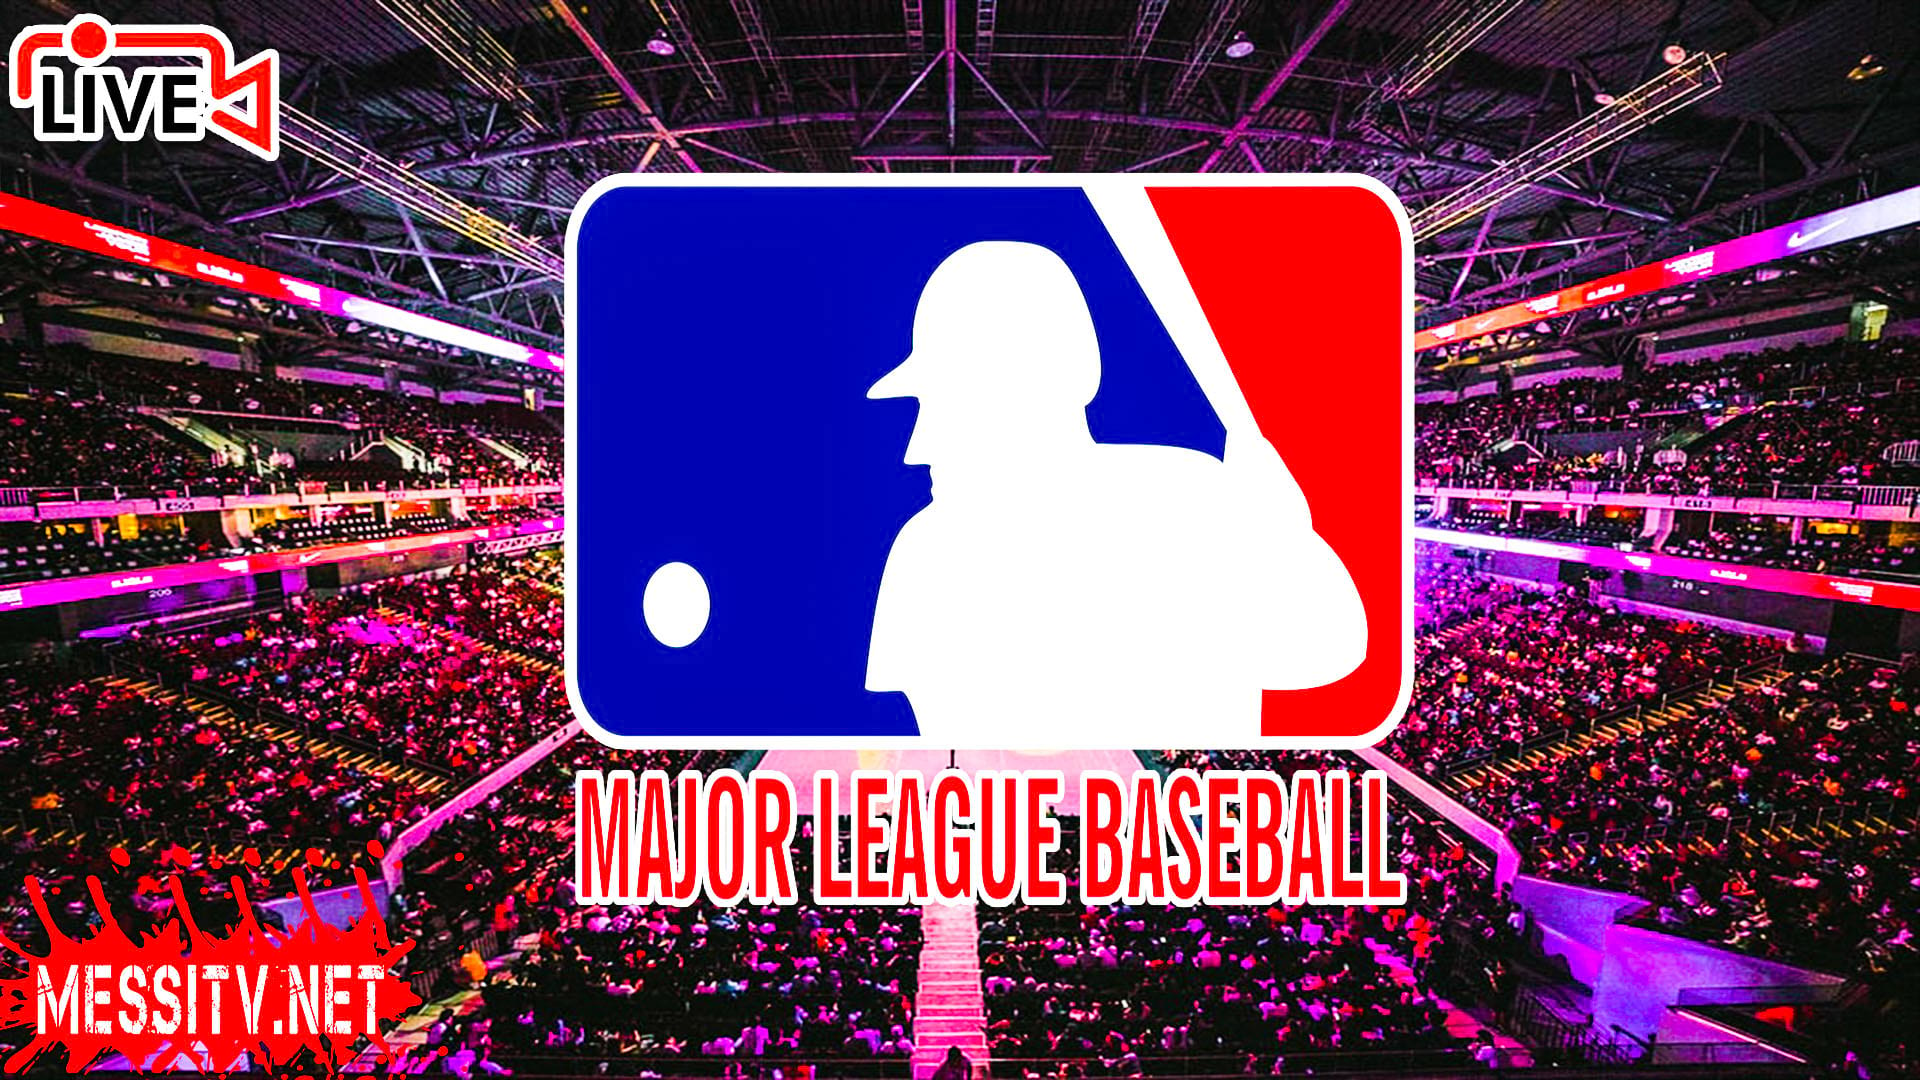 Major League Baseball, watch MLB Live, Astros at White Sox, Brewers at Braves, Giants at Dodgers, Oakland Athletics, Arizona Diamondbacks, San Diego Padres, Pittsburgh Pirates, New York Yankees, Toronto Blue Jays, Seattle Mariners, Baltimore Orioles, Philadelphia Phillies, New York Mets, Texas Rangers, Tampa Bay Rays, Miami Marlins, Atlanta Braves, Boston Red Sox, Minnesota Twins, Chicago Cubs, Milwaukee Brewers, Washington Nationals, St. Louis Cardinals, Los Angeles Angels, Kansas City Royals, Cleveland Indians, Chicago White Sox, Detroit Tigers, Houston Astros, Cincinnati Reds, San Francisco Giants, Colorado Rockies, Los Angeles Dodgers, Kansas City Royals